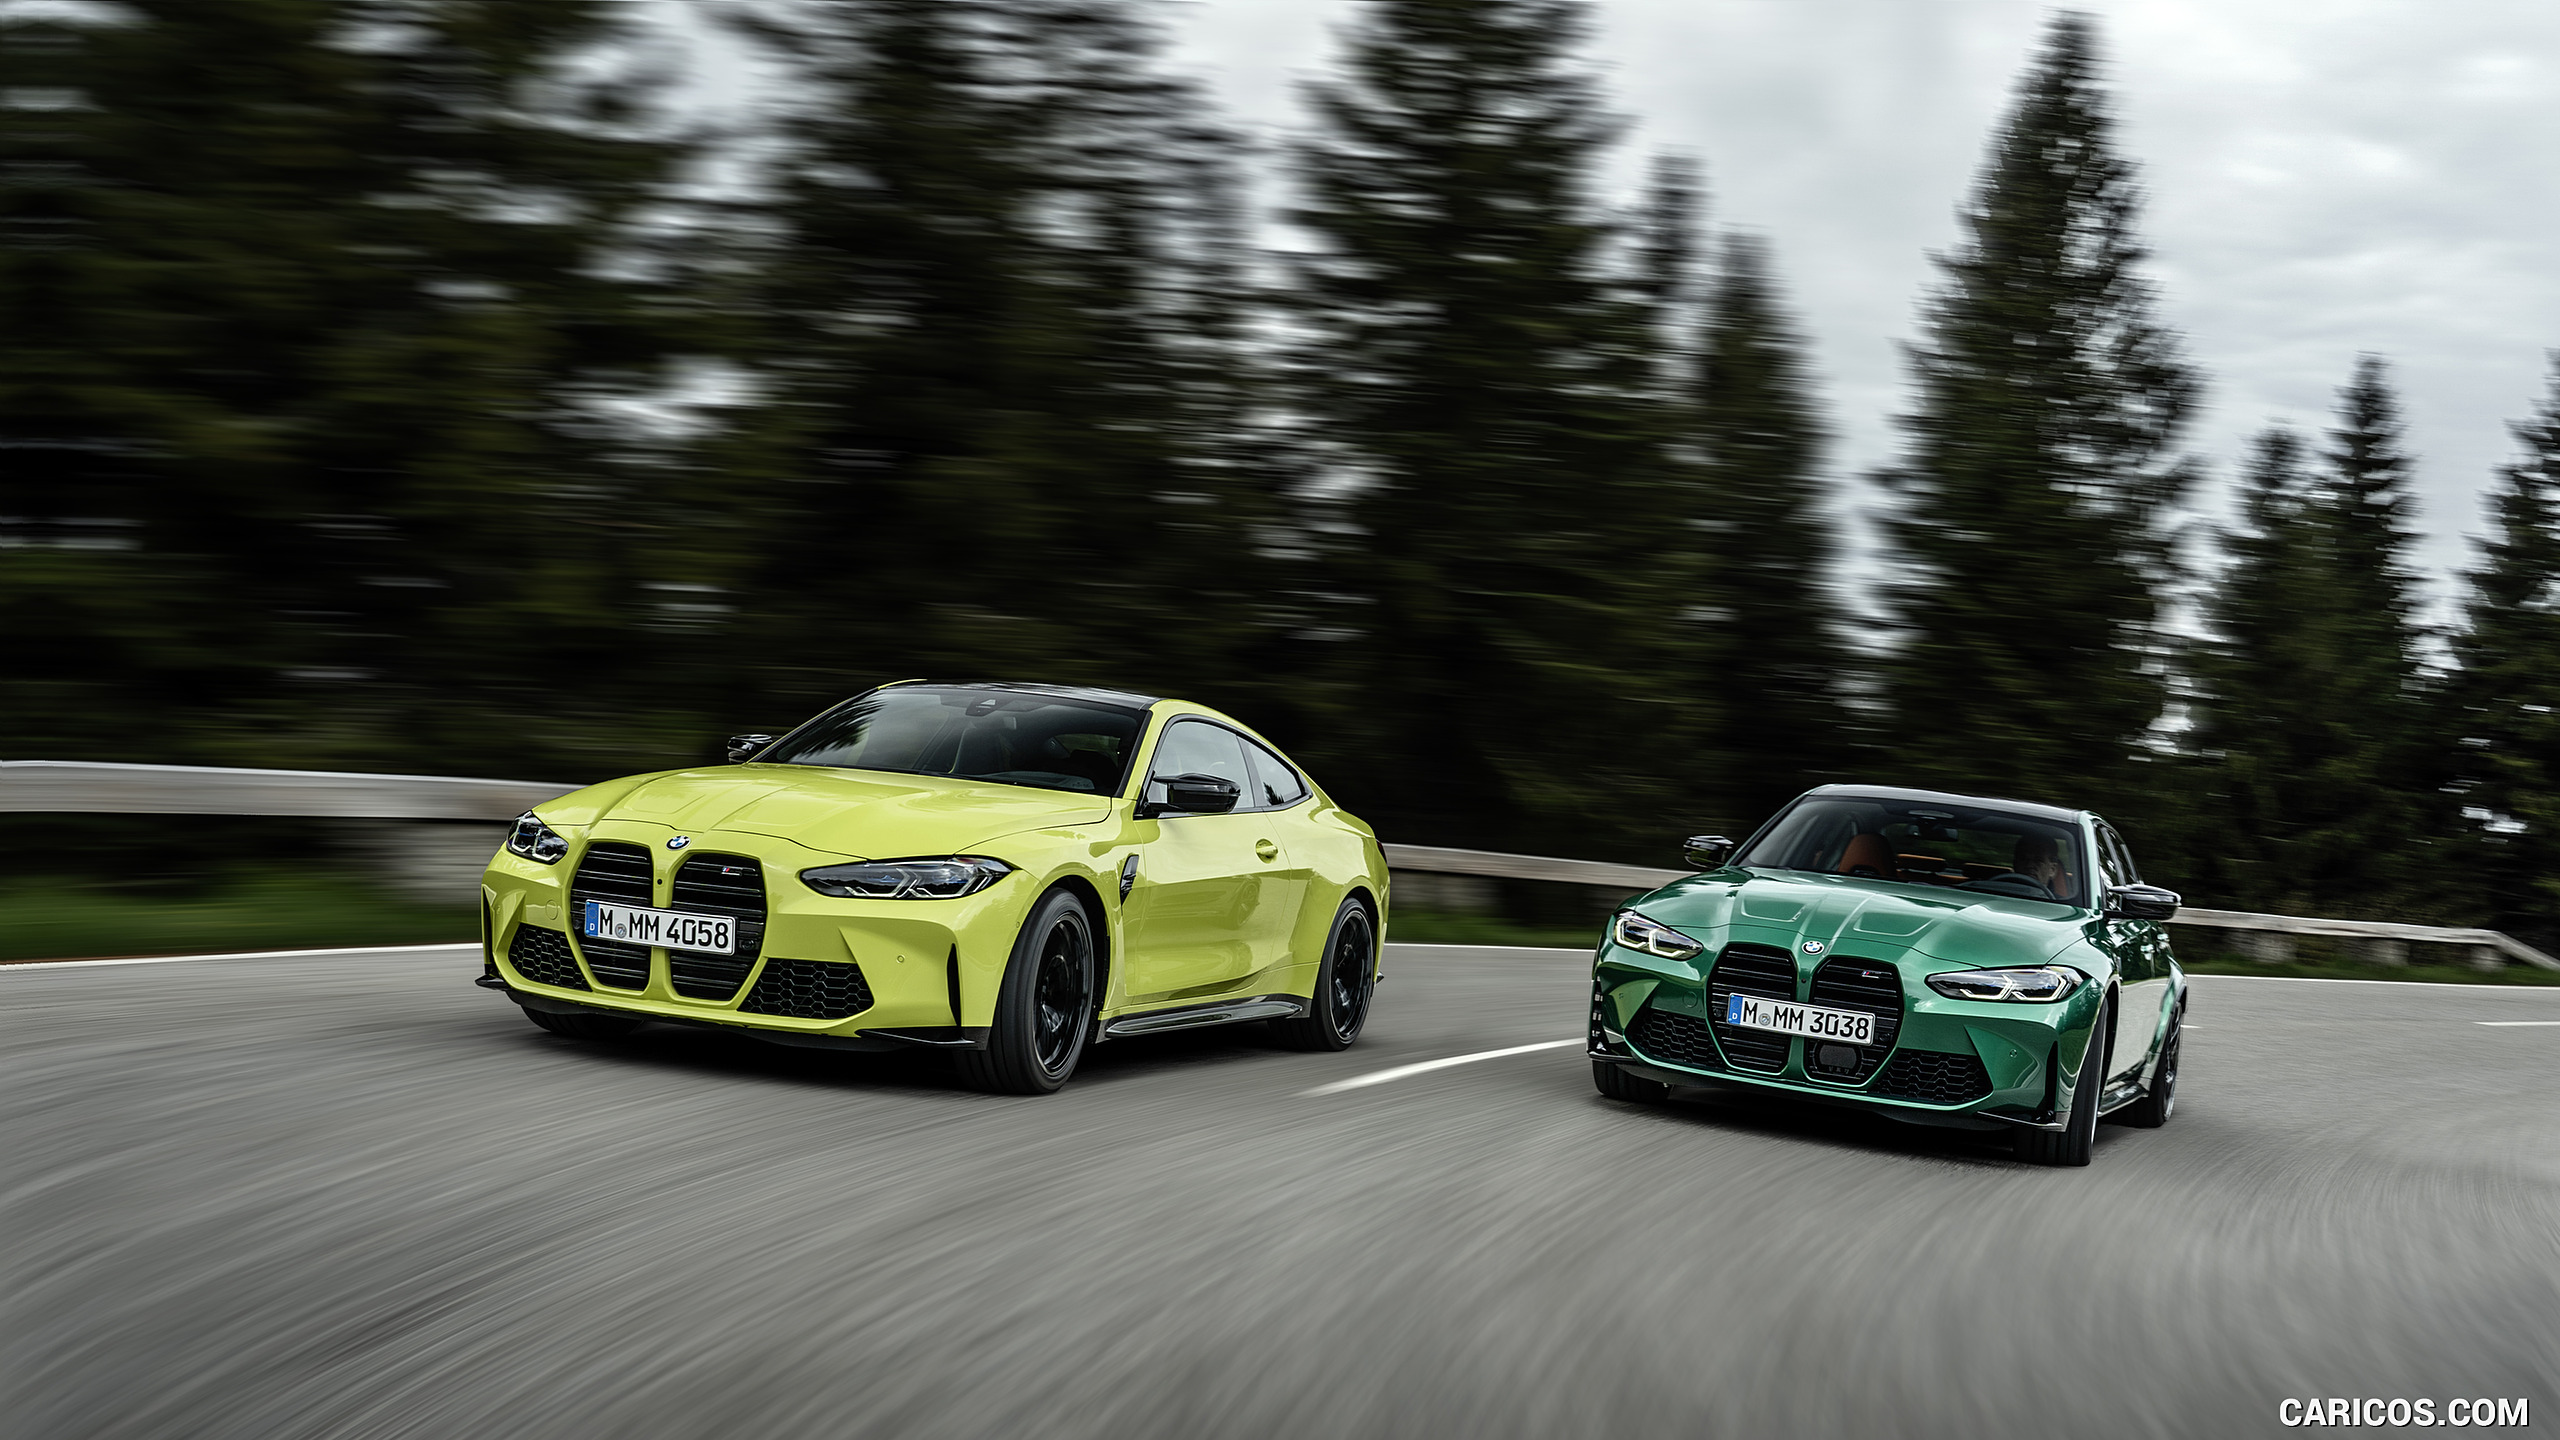 2021 BMW M3 Sedan and 2021 M4 Coupe HD Wallpaper 14 2560x1440